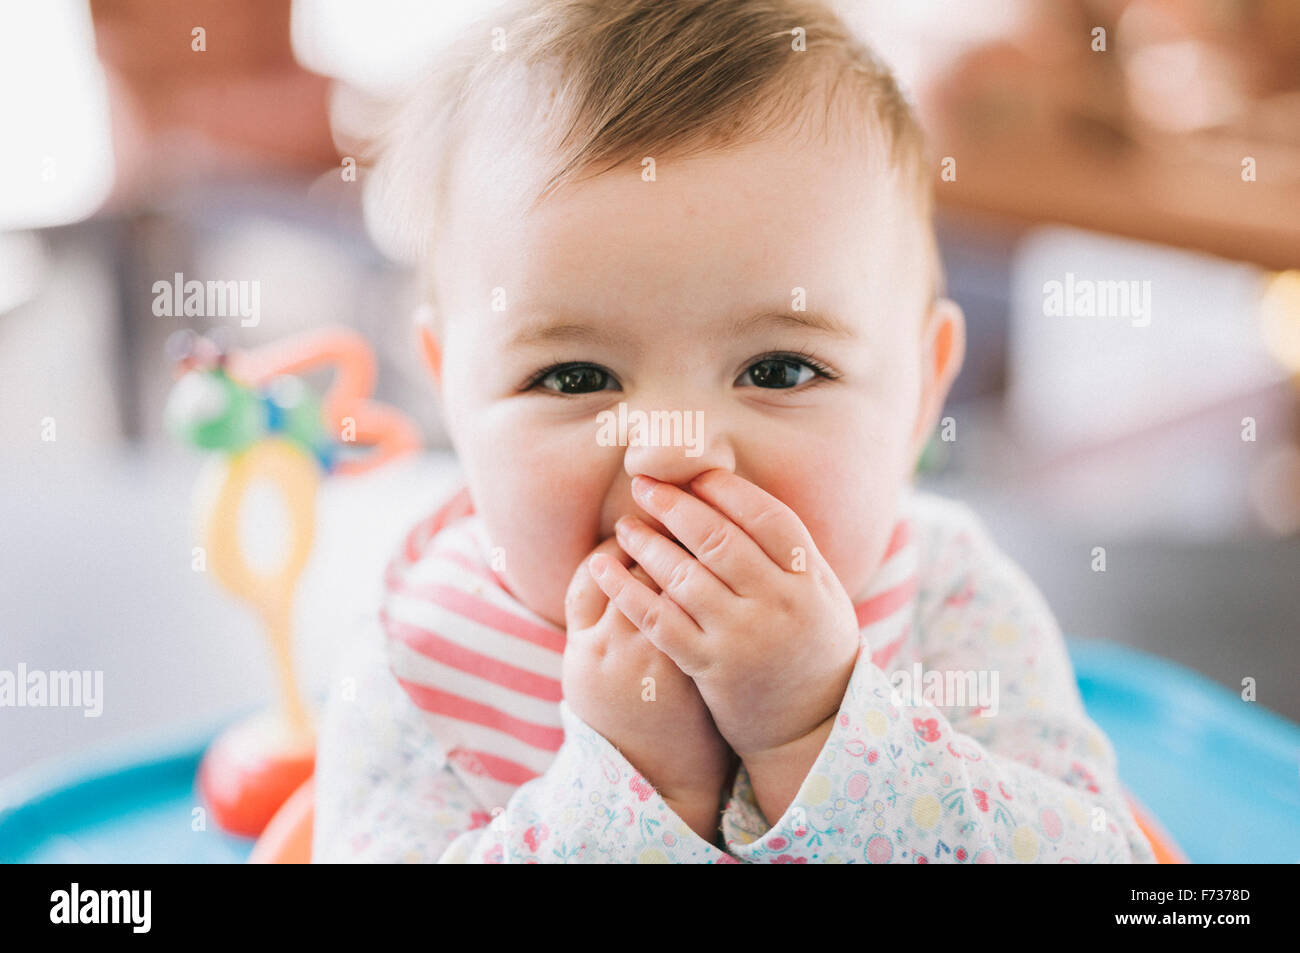 A baby girl with her hands covering her mouth, looking at the camera. - Stock Image